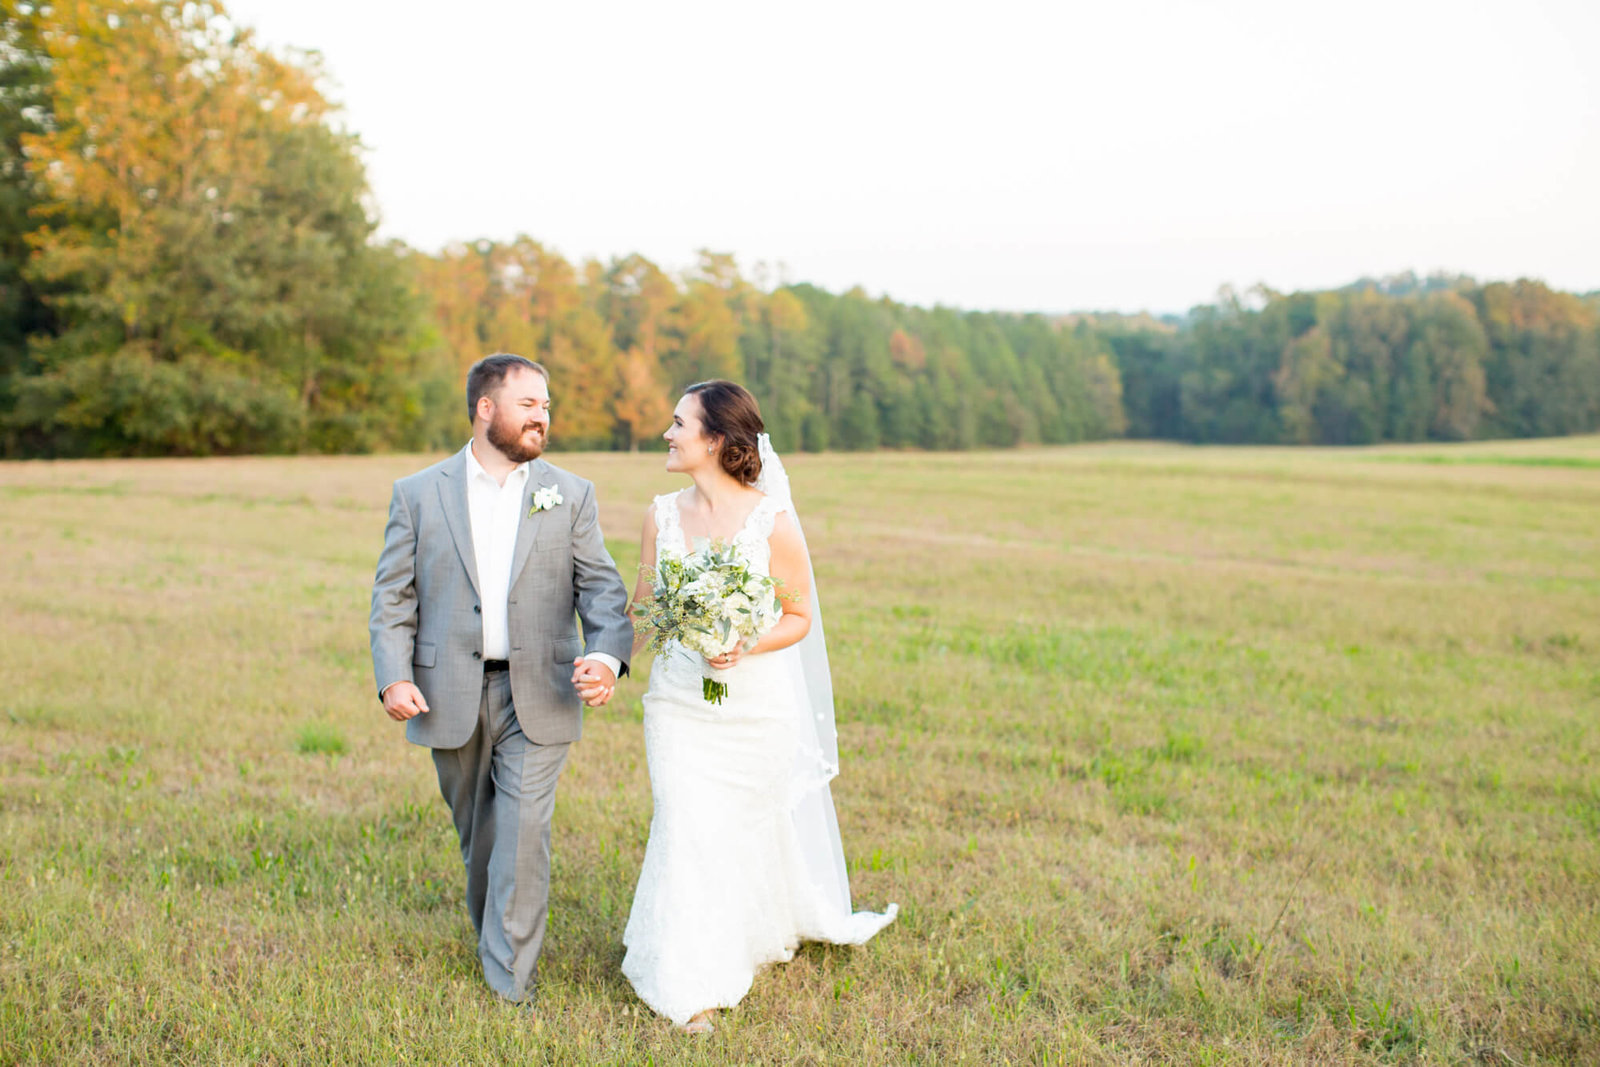 Hunter-Laroche-Submission_Jessica-Hunt-Photography_SC-Wedding-Photographer_2017_RAW-96